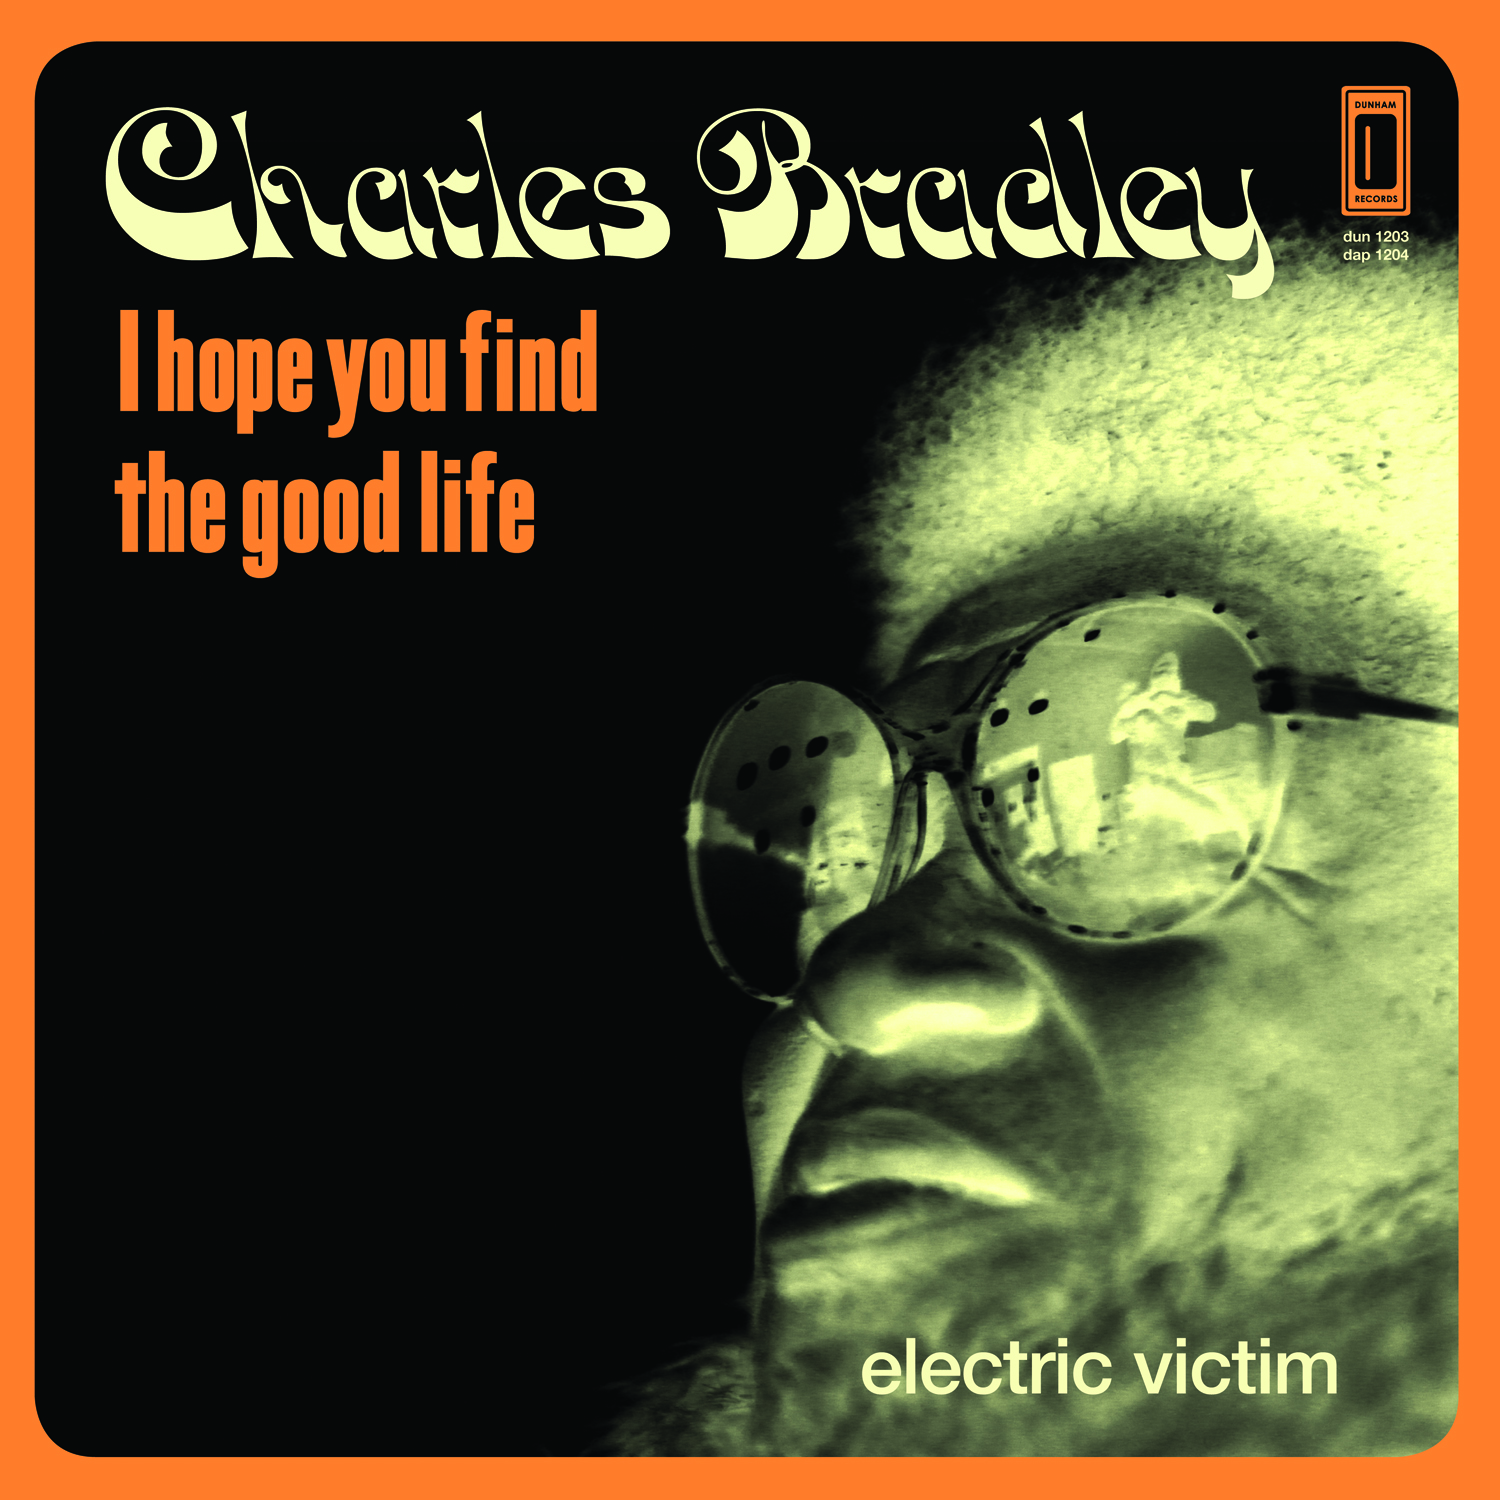 Charles Bradley - I Hope You Find The Good Life